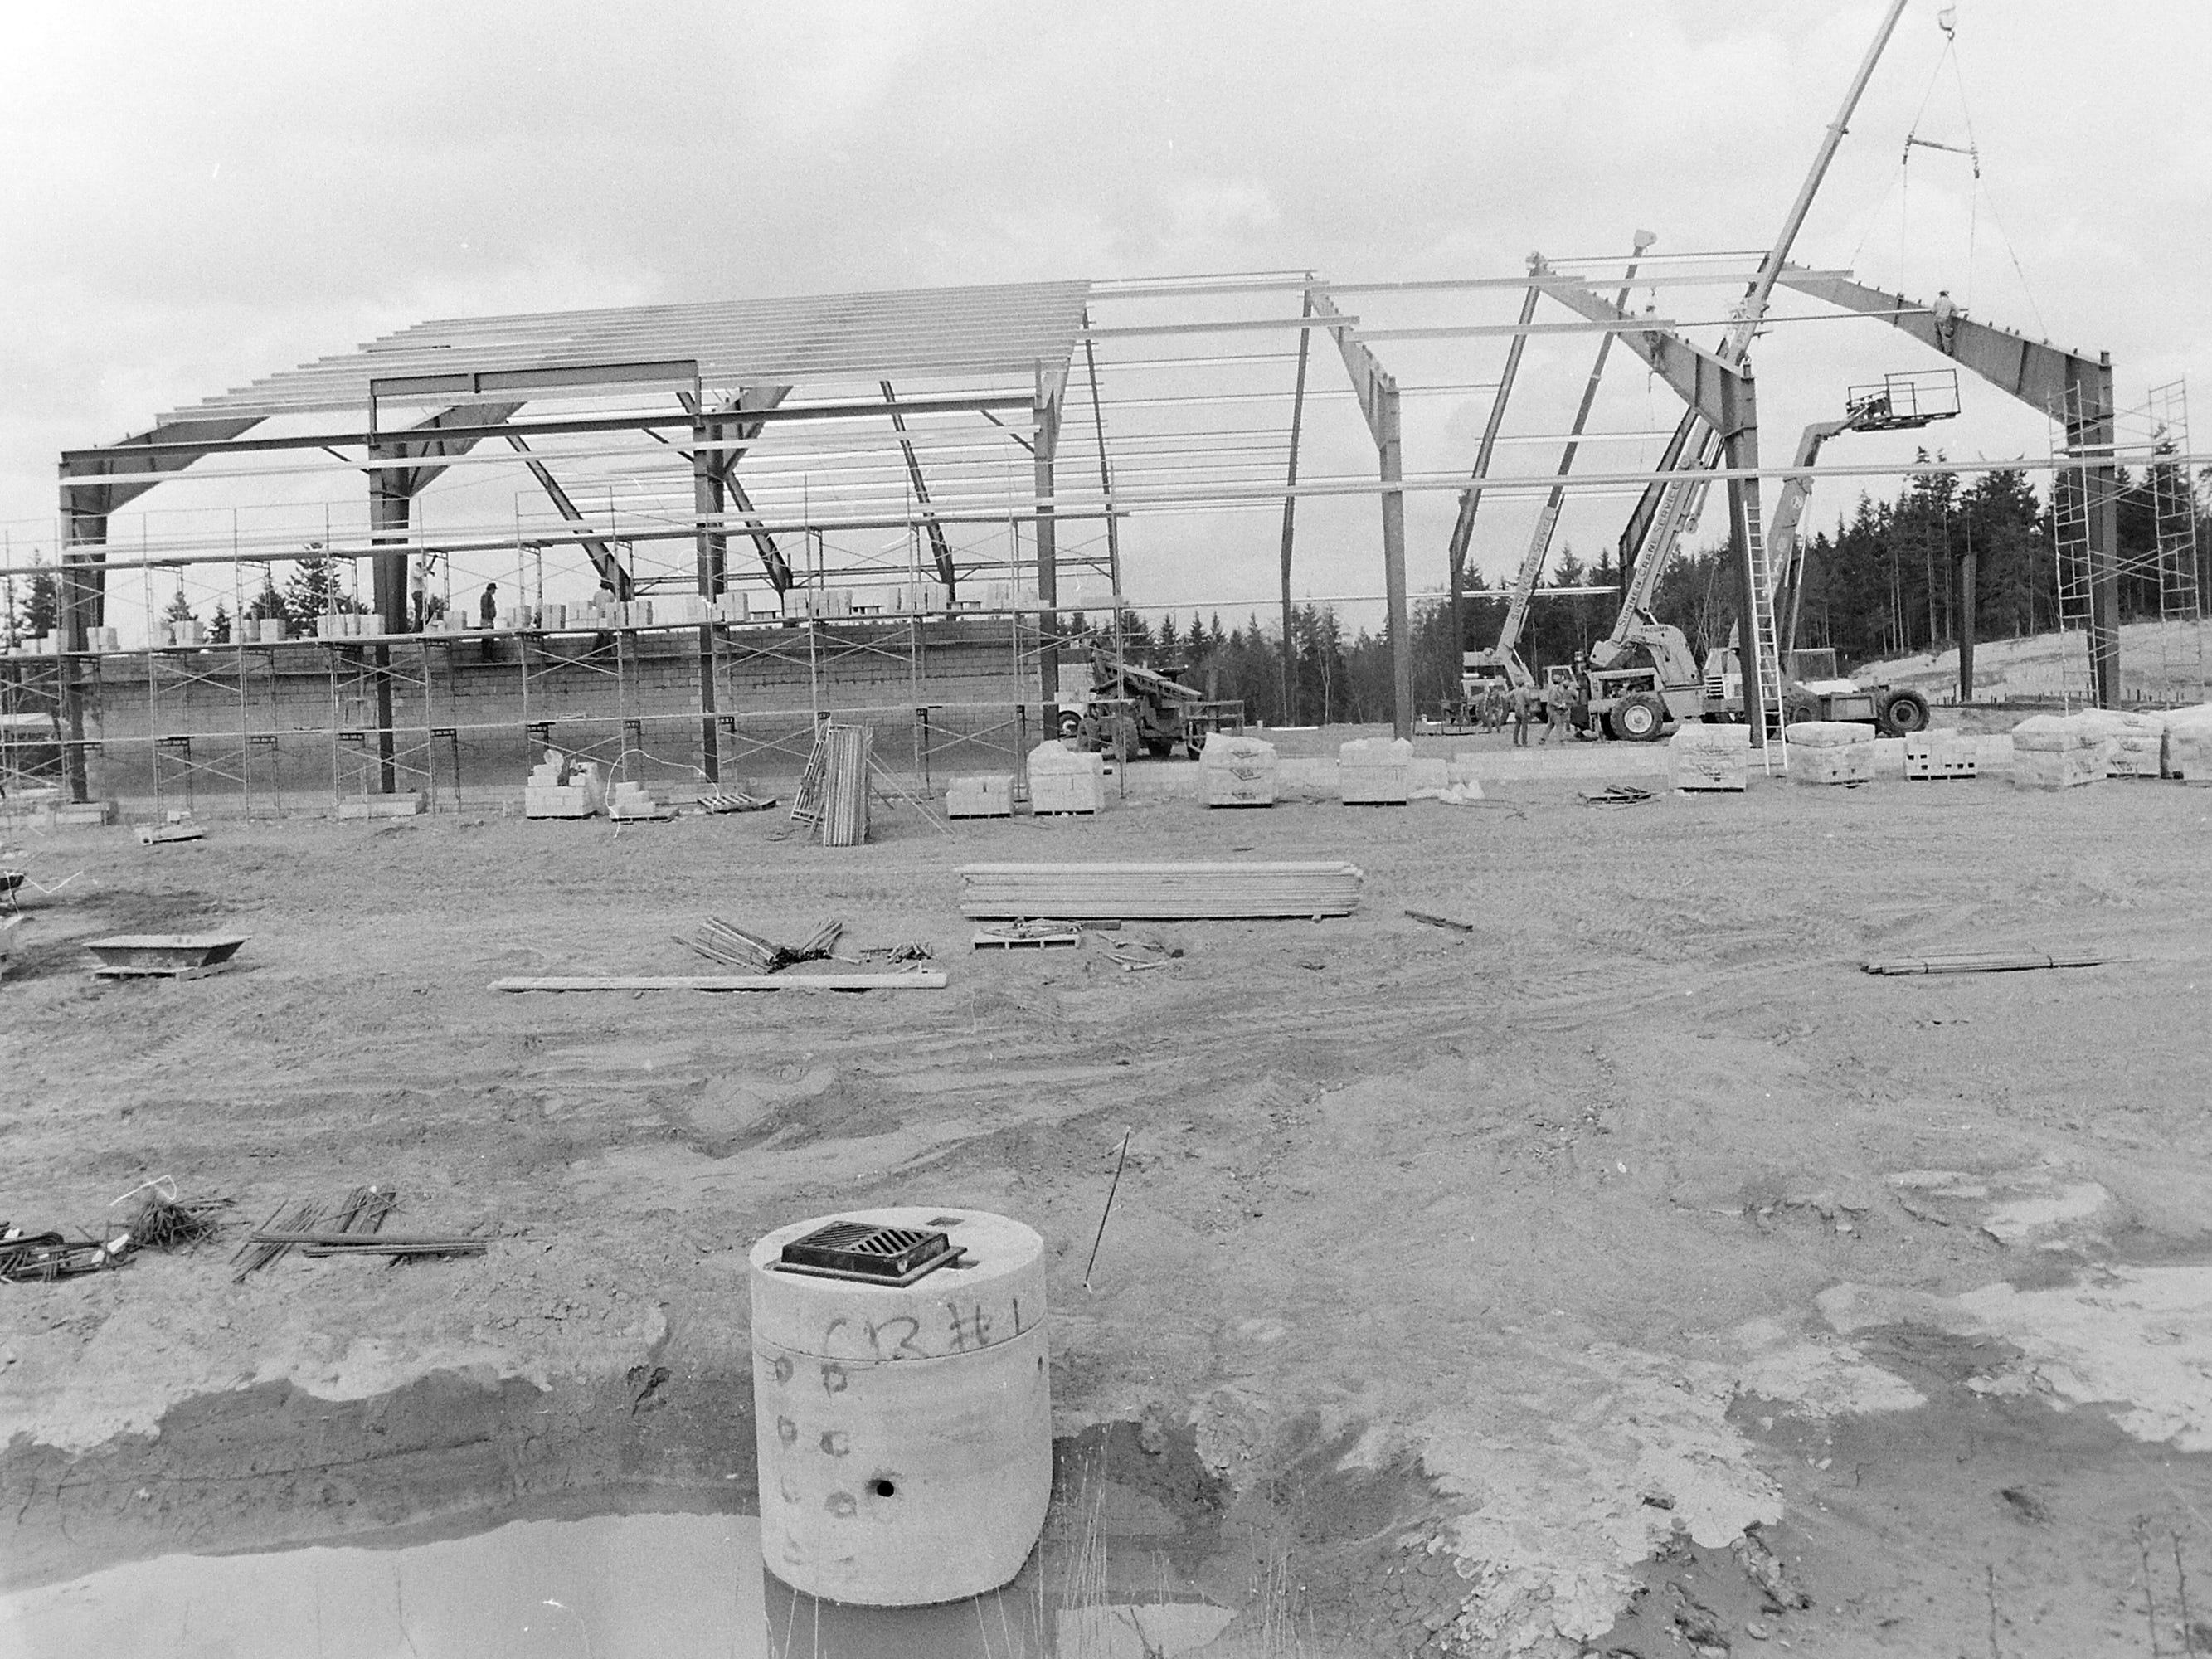 04/07/87